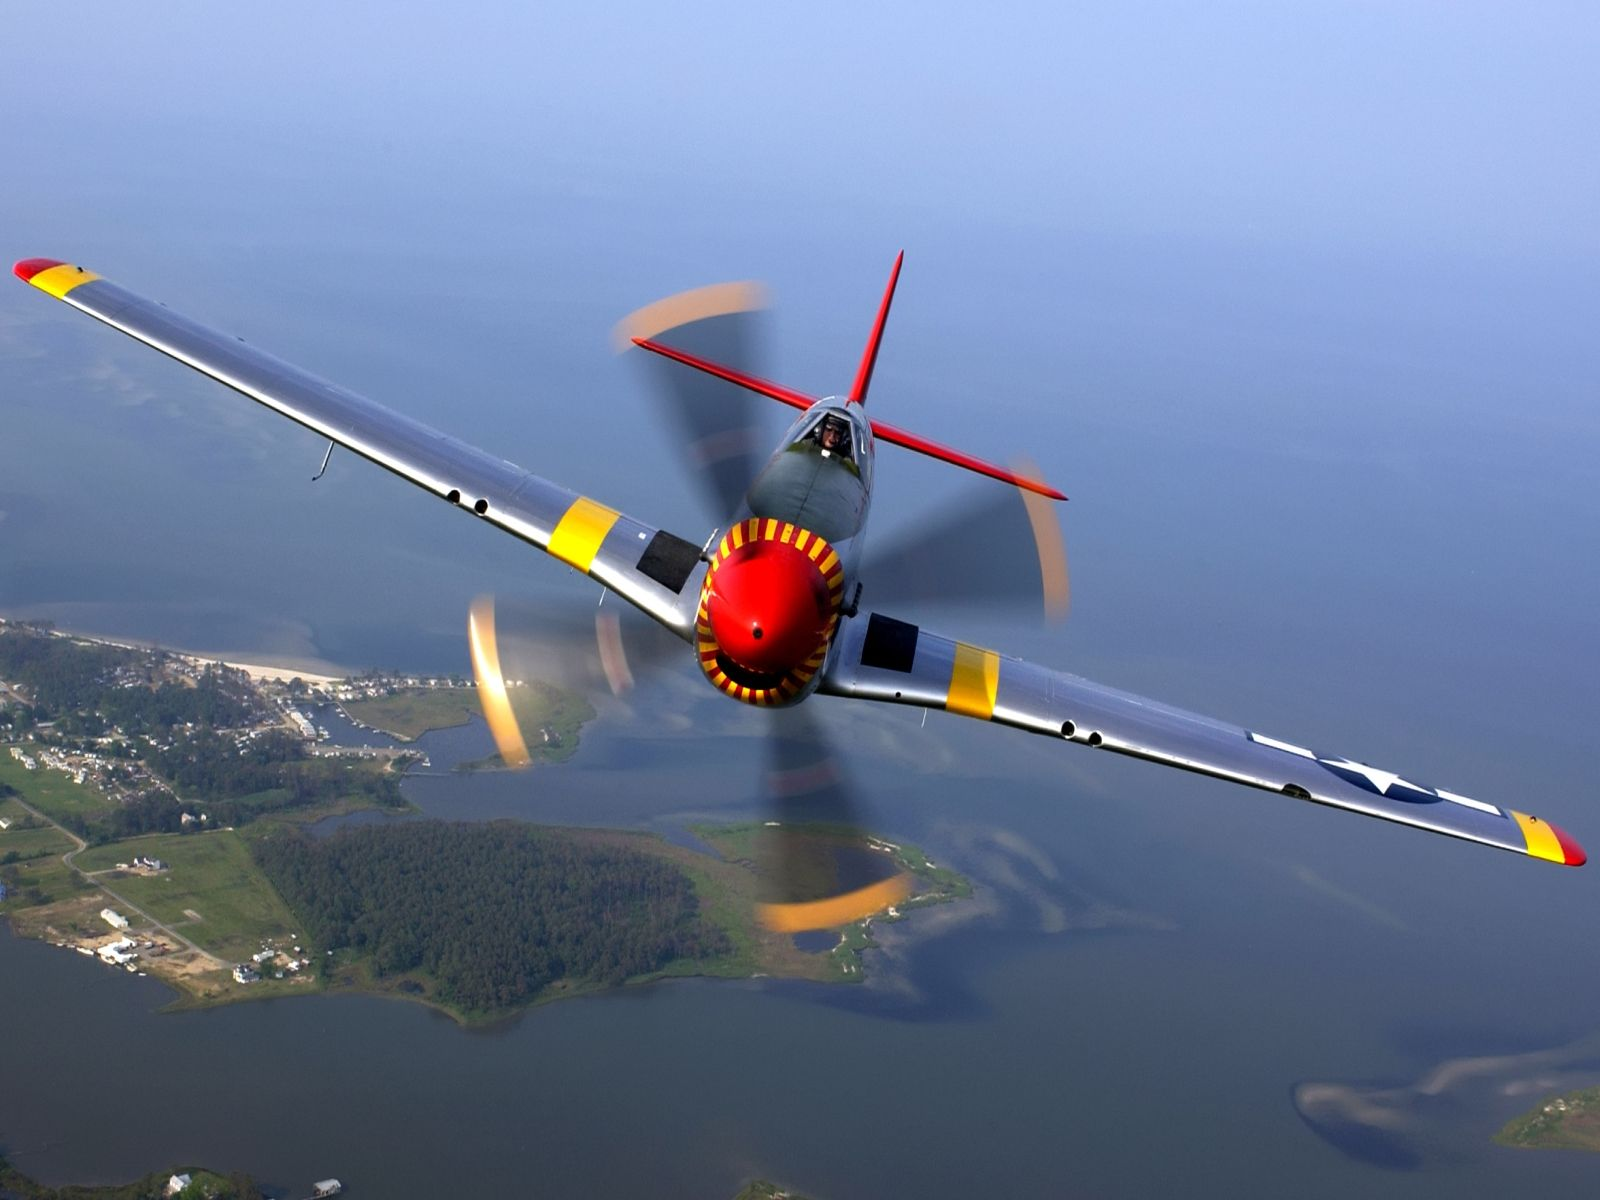 North American P-51 Mustang - Alex Laird